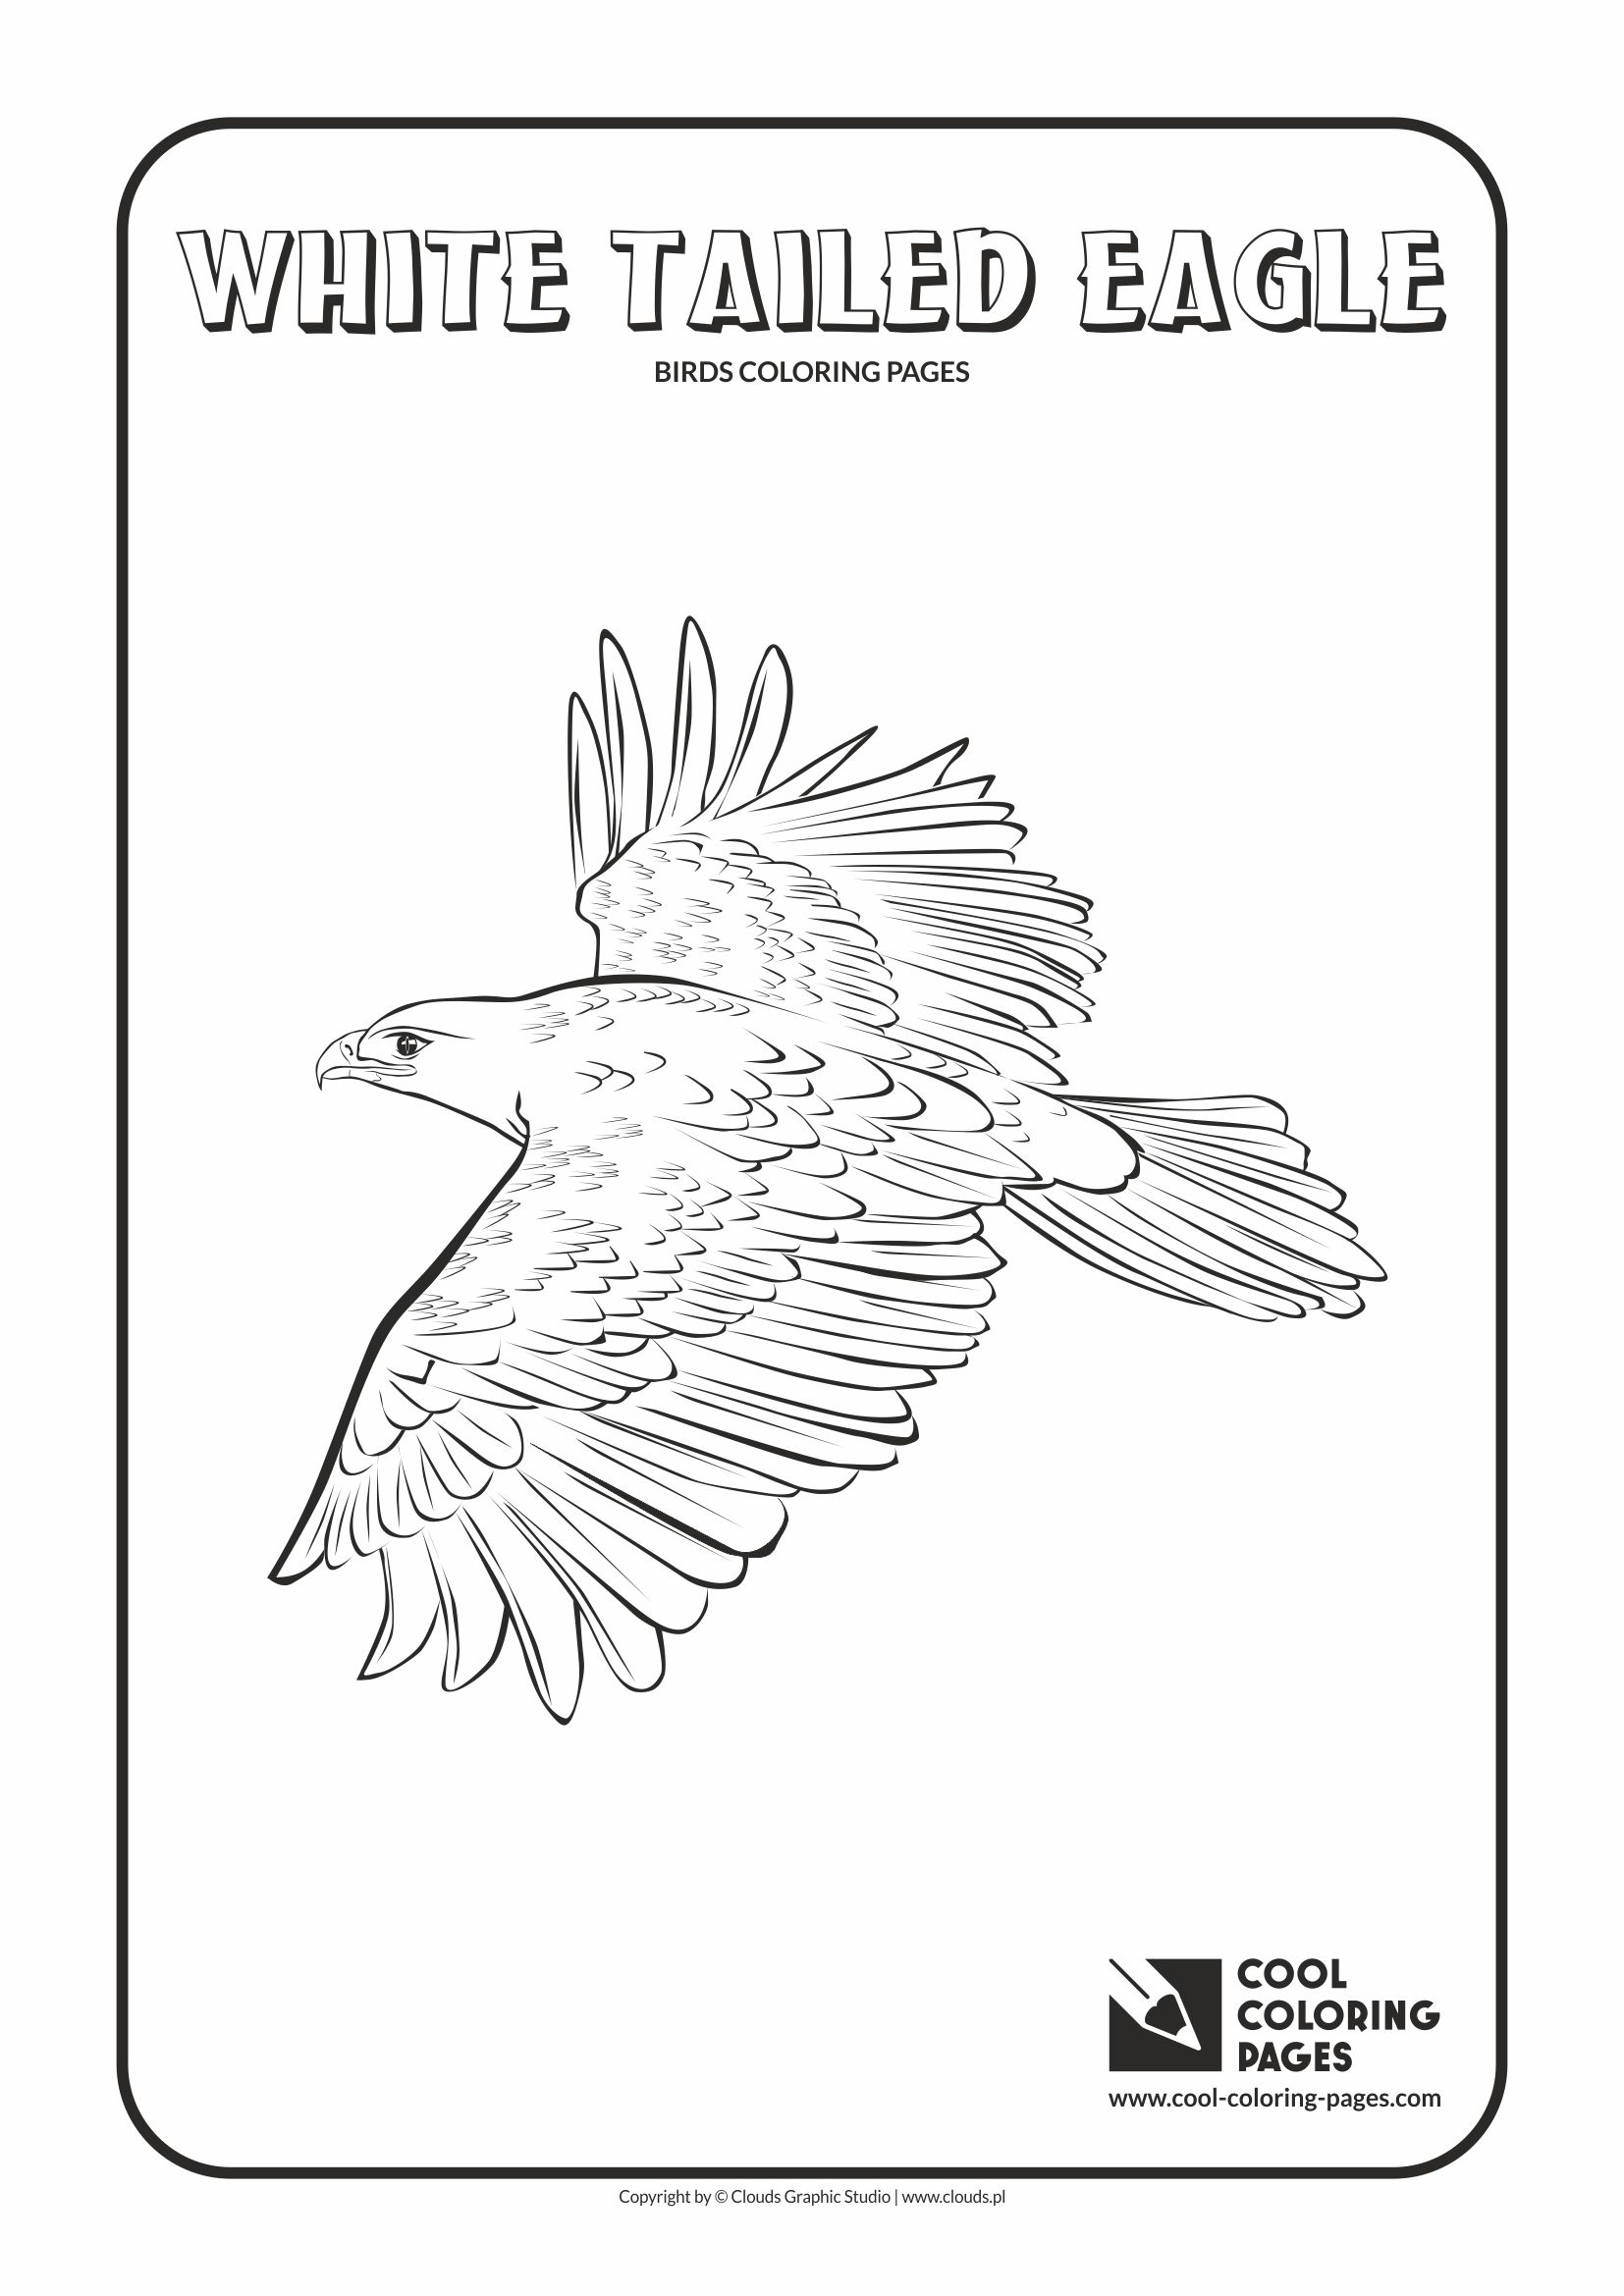 birds coloring pages cool coloring pages